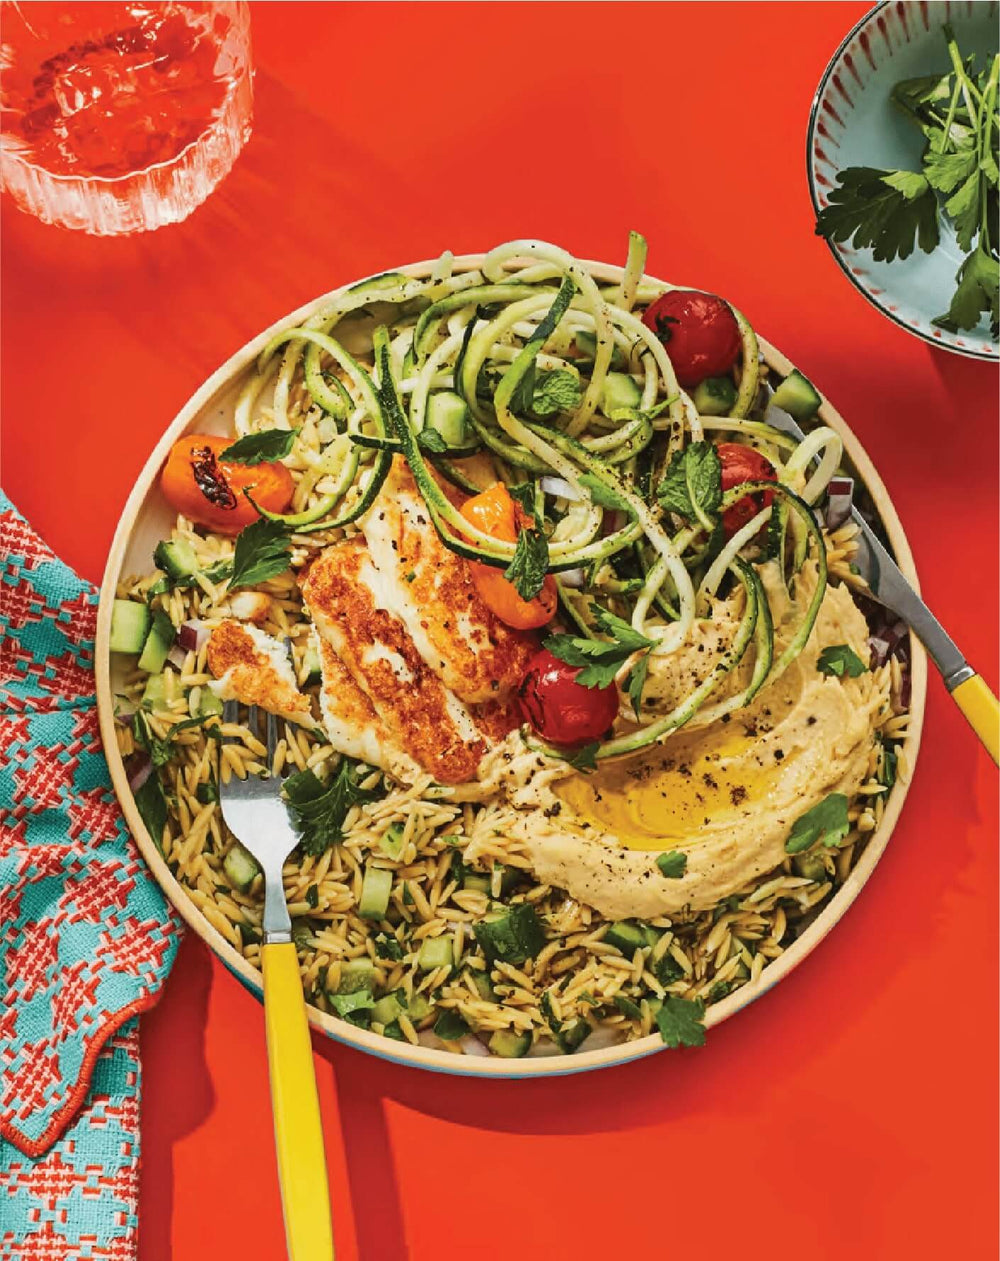 Banza rice with hummus and zucchini noodles